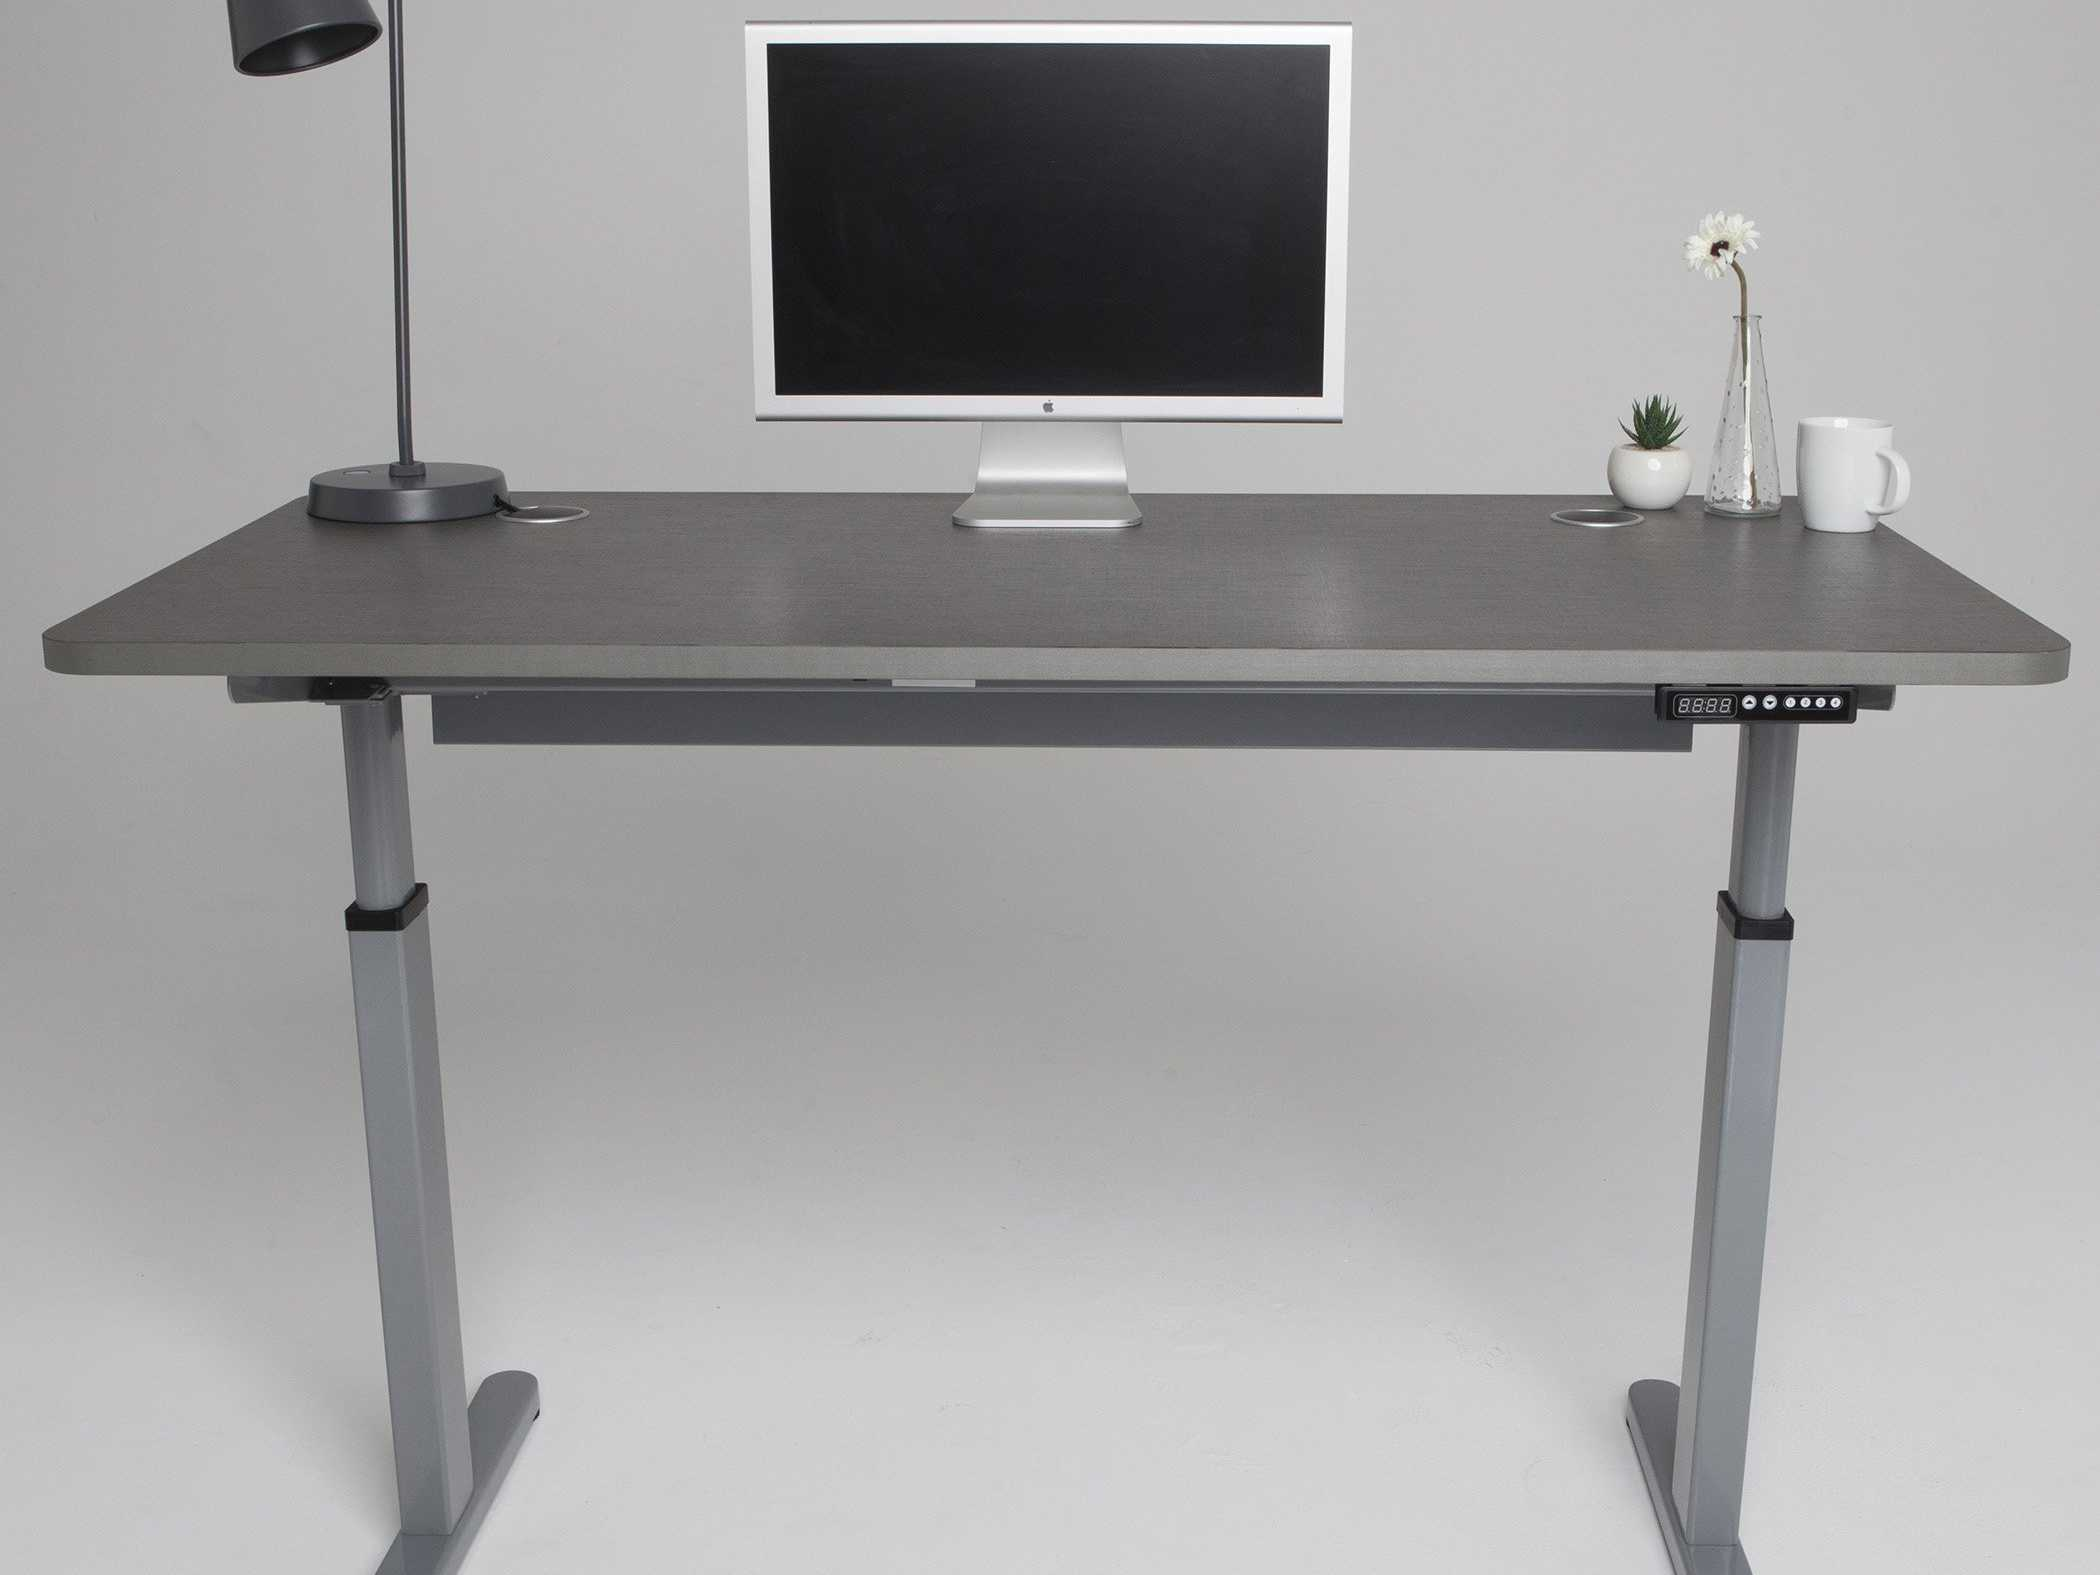 standing desk in grey simple standing desk in grey minimalist grey standing desk grey-theme standing desk grey standing desk office grey standing desk for office grey standing desk for home office standing desk for home office  standing desk with